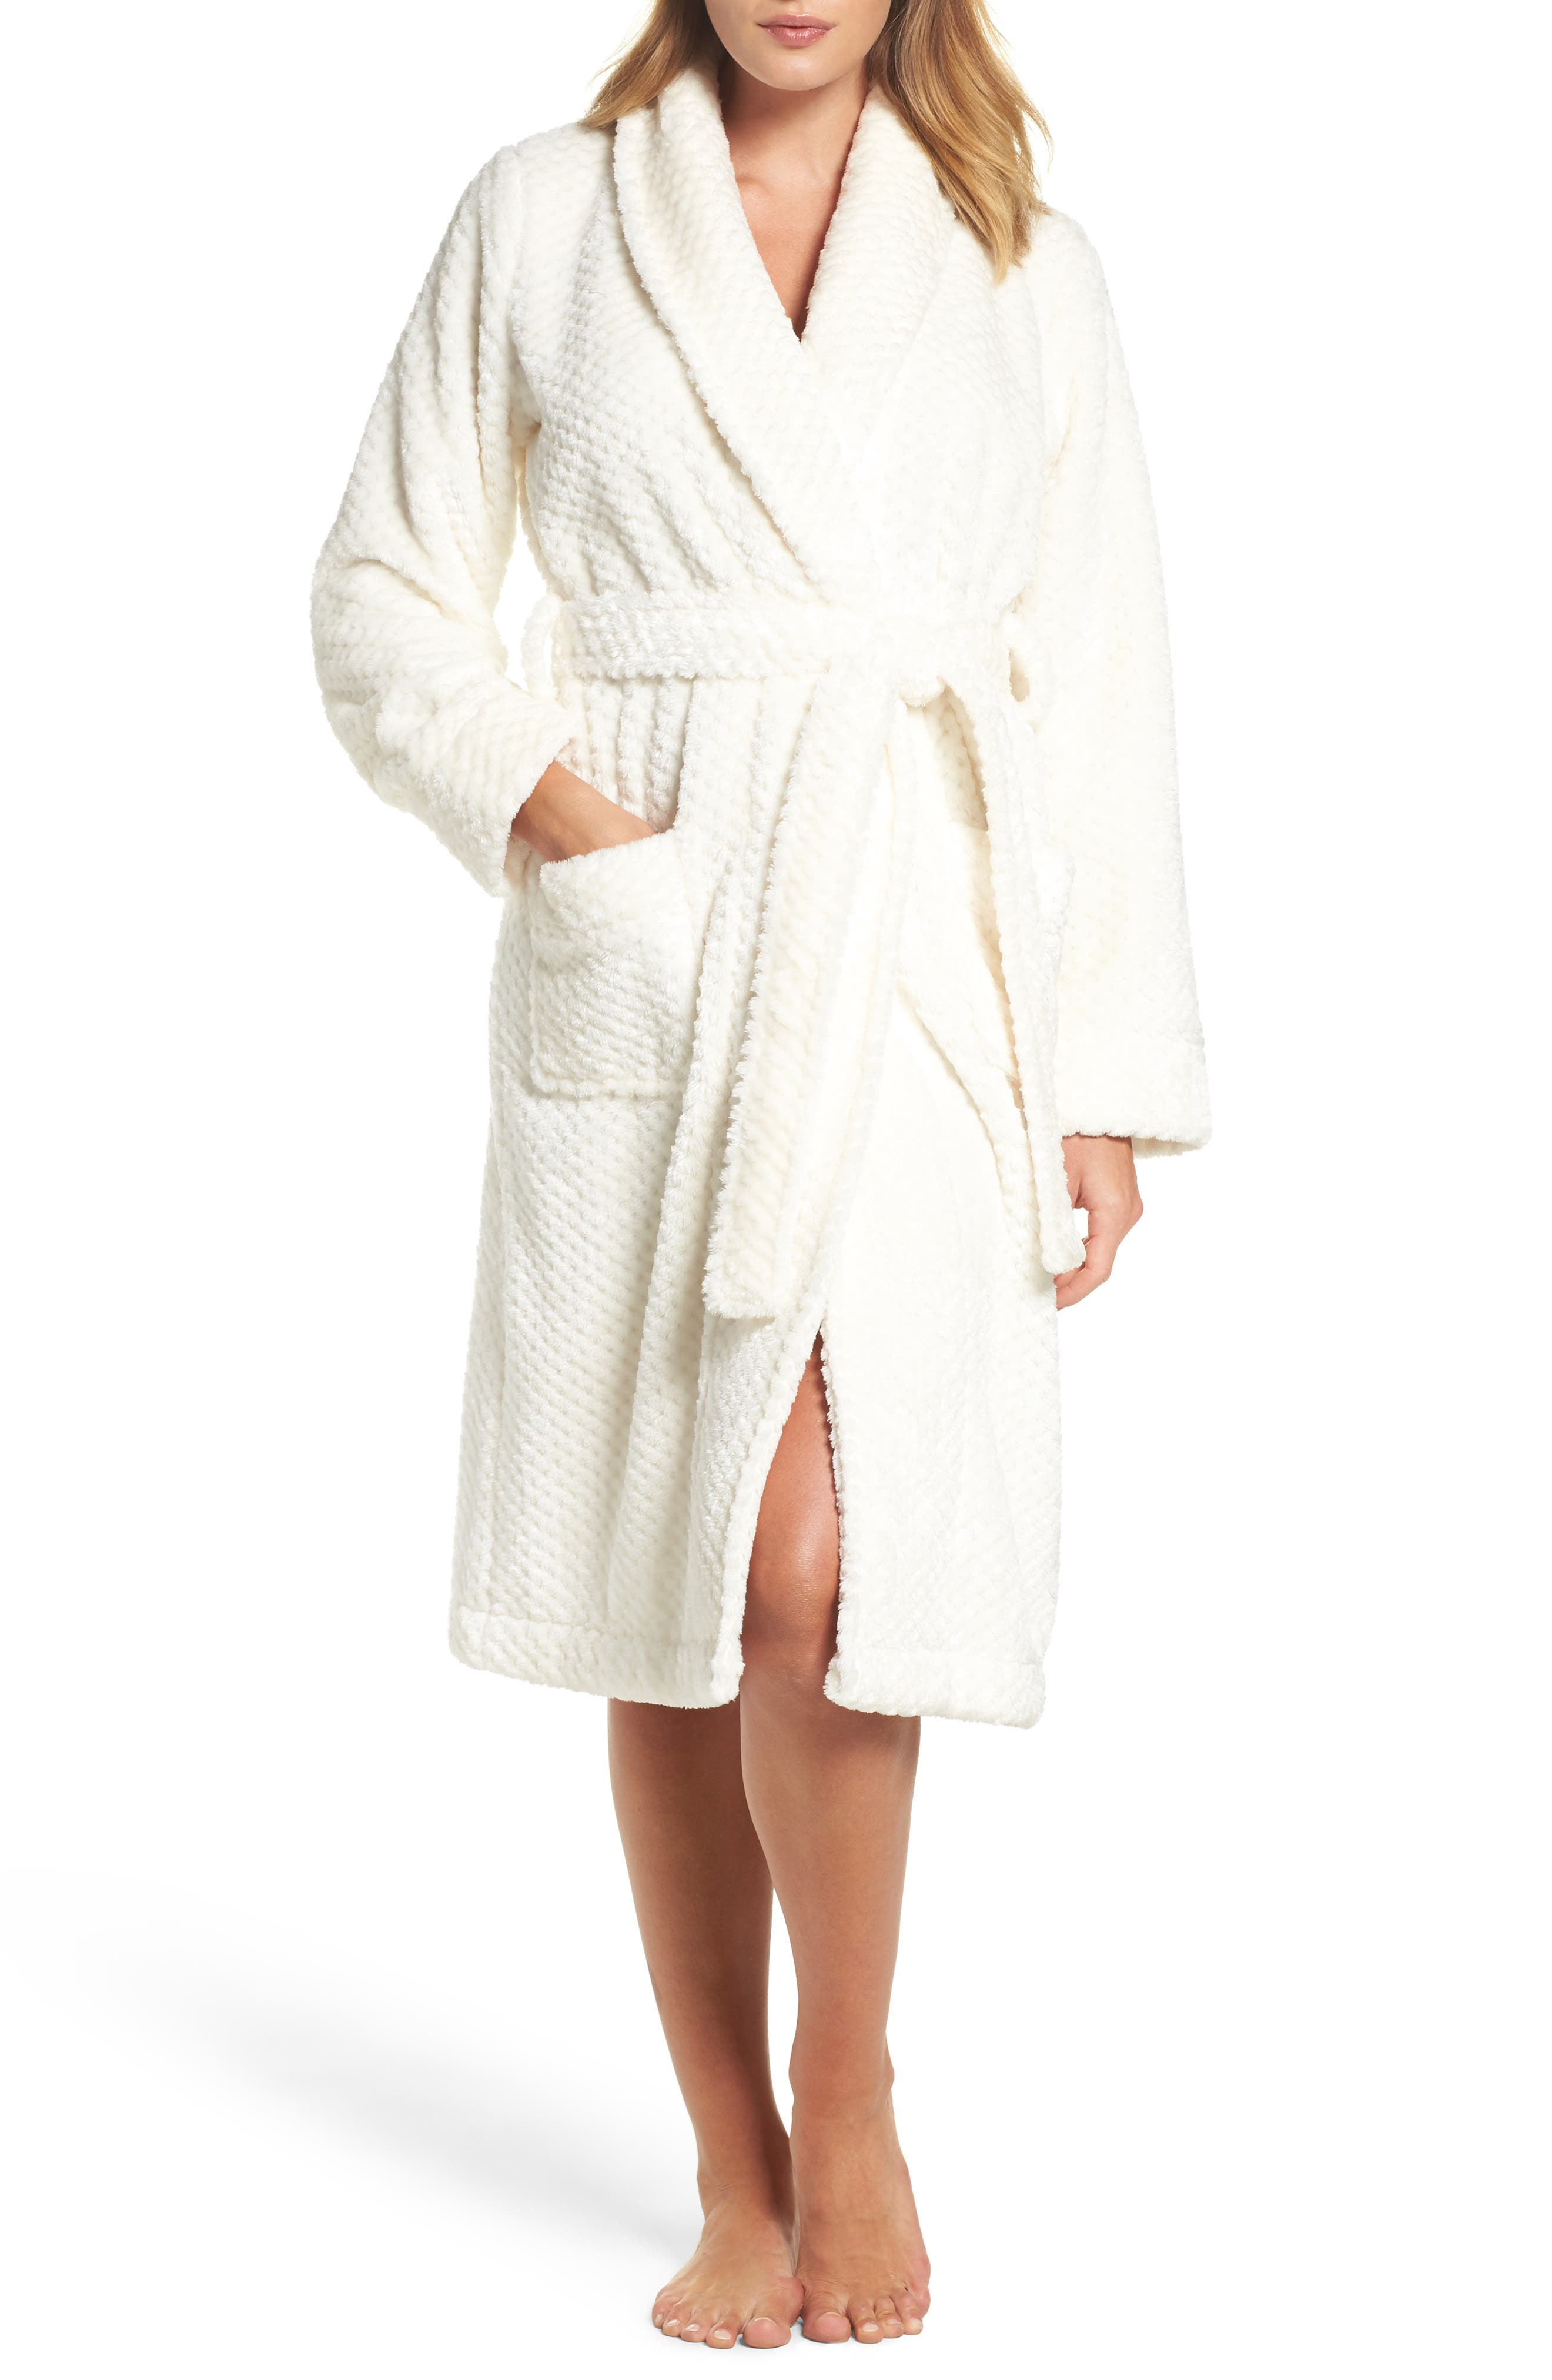 Nordstrom So Soft Plush Robe,                             Main thumbnail 1, color,                             Ivory Egret